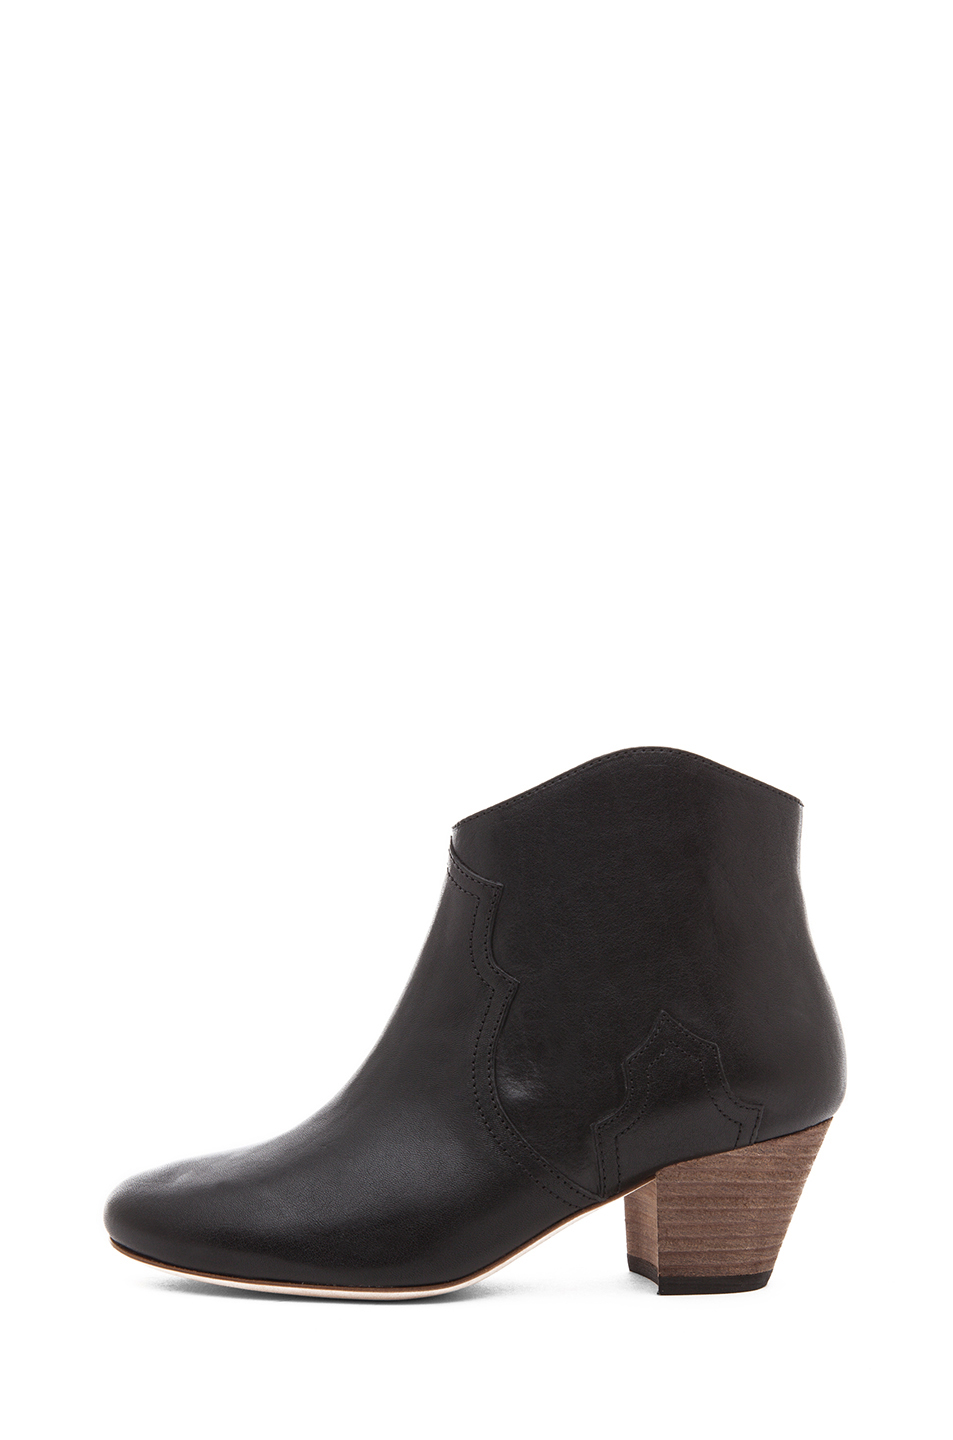 Isabel Marant | Dicker Calfskin Leather Boots in Black